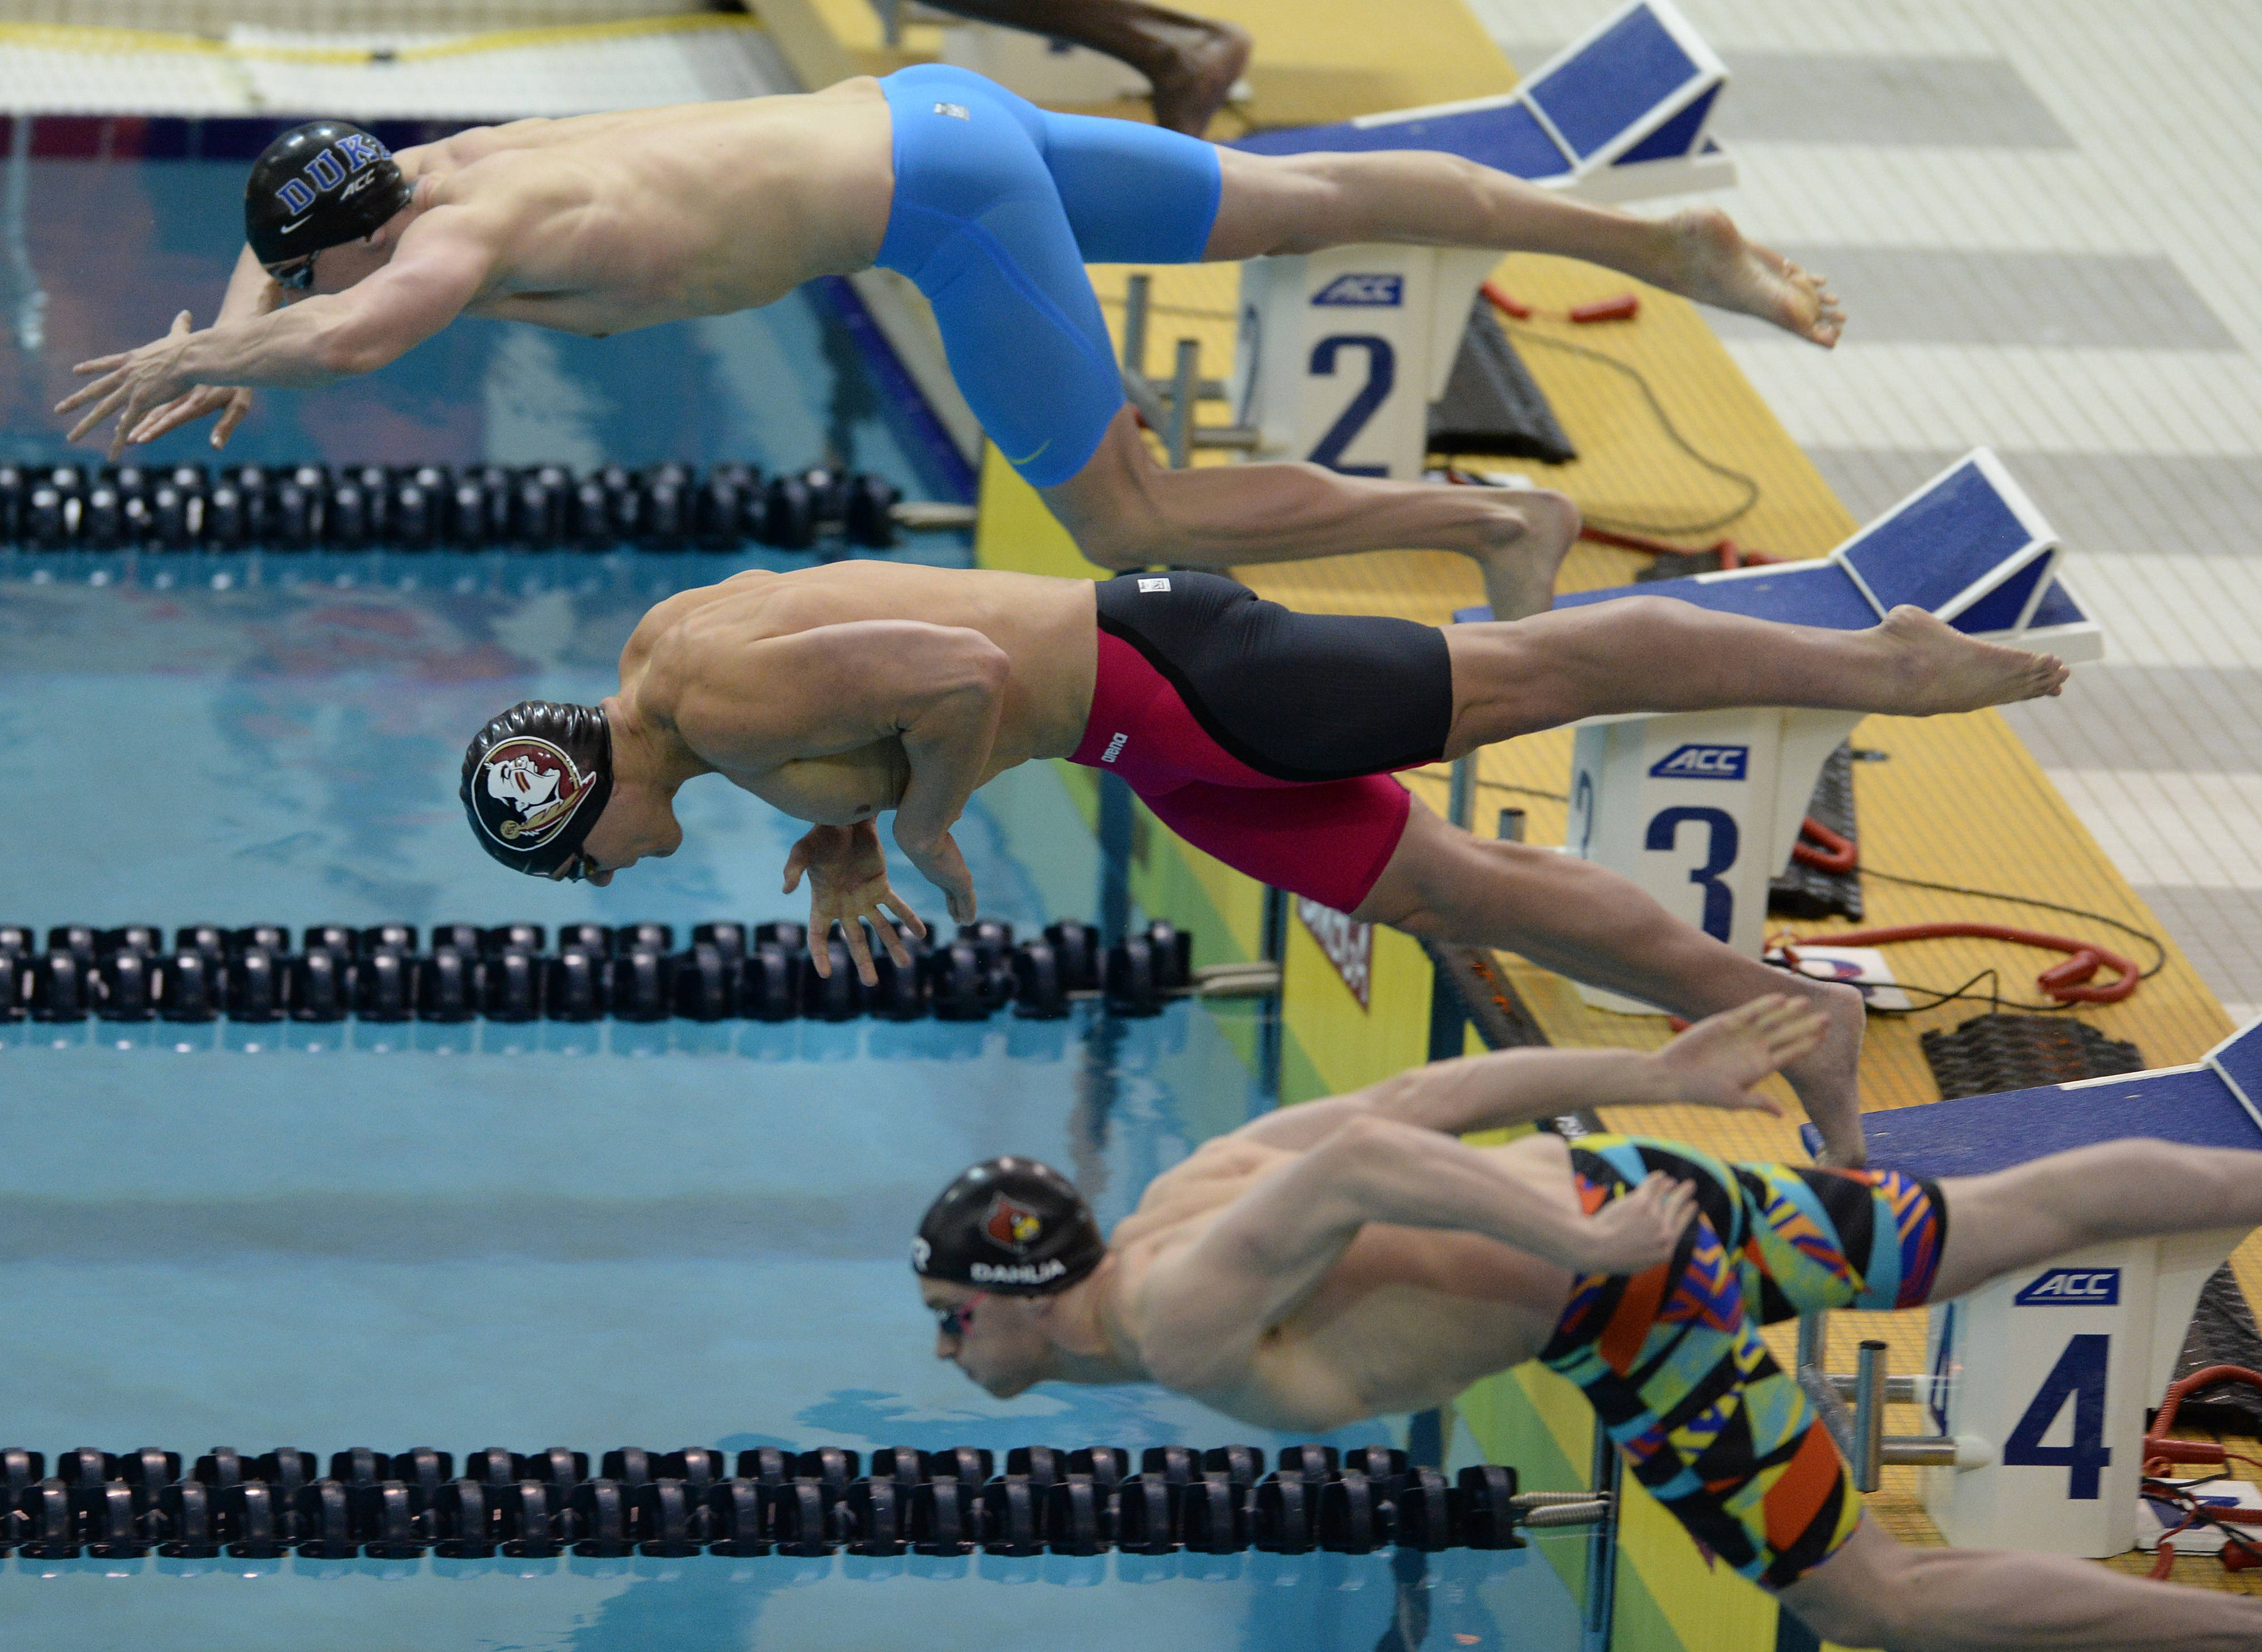 Jason McCormick gets off the blocks in the 50 free - Mitch White